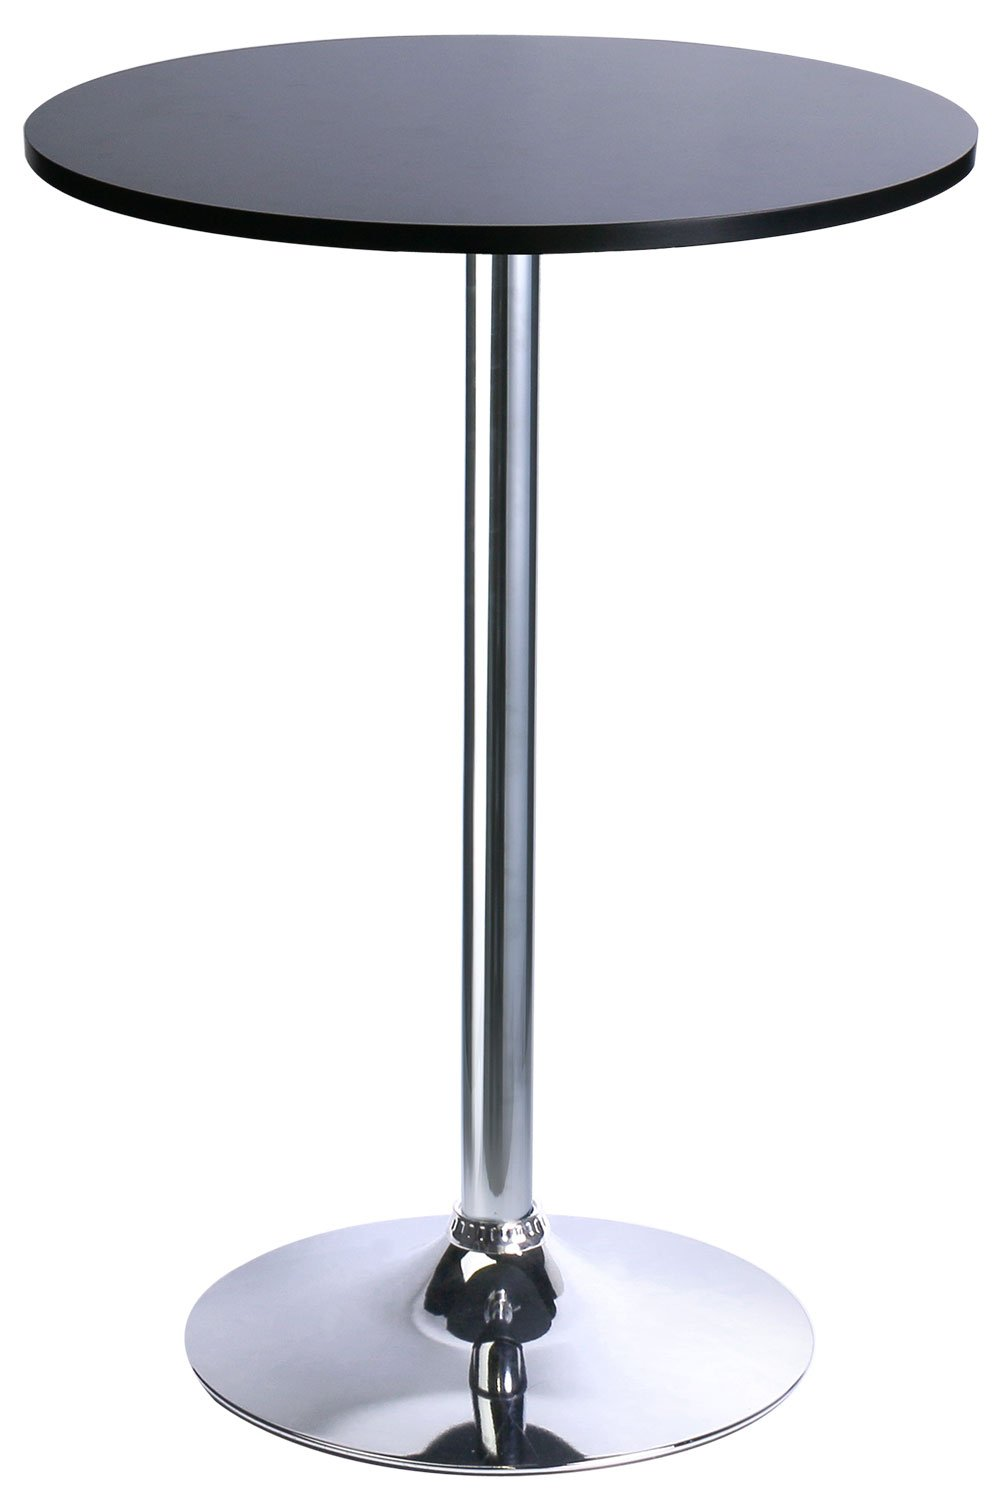 Leopard MDF Round Top Not Adjustable (41 INCHES Height) Bar Table, Pub Table with Silver Leg and Base (Black)